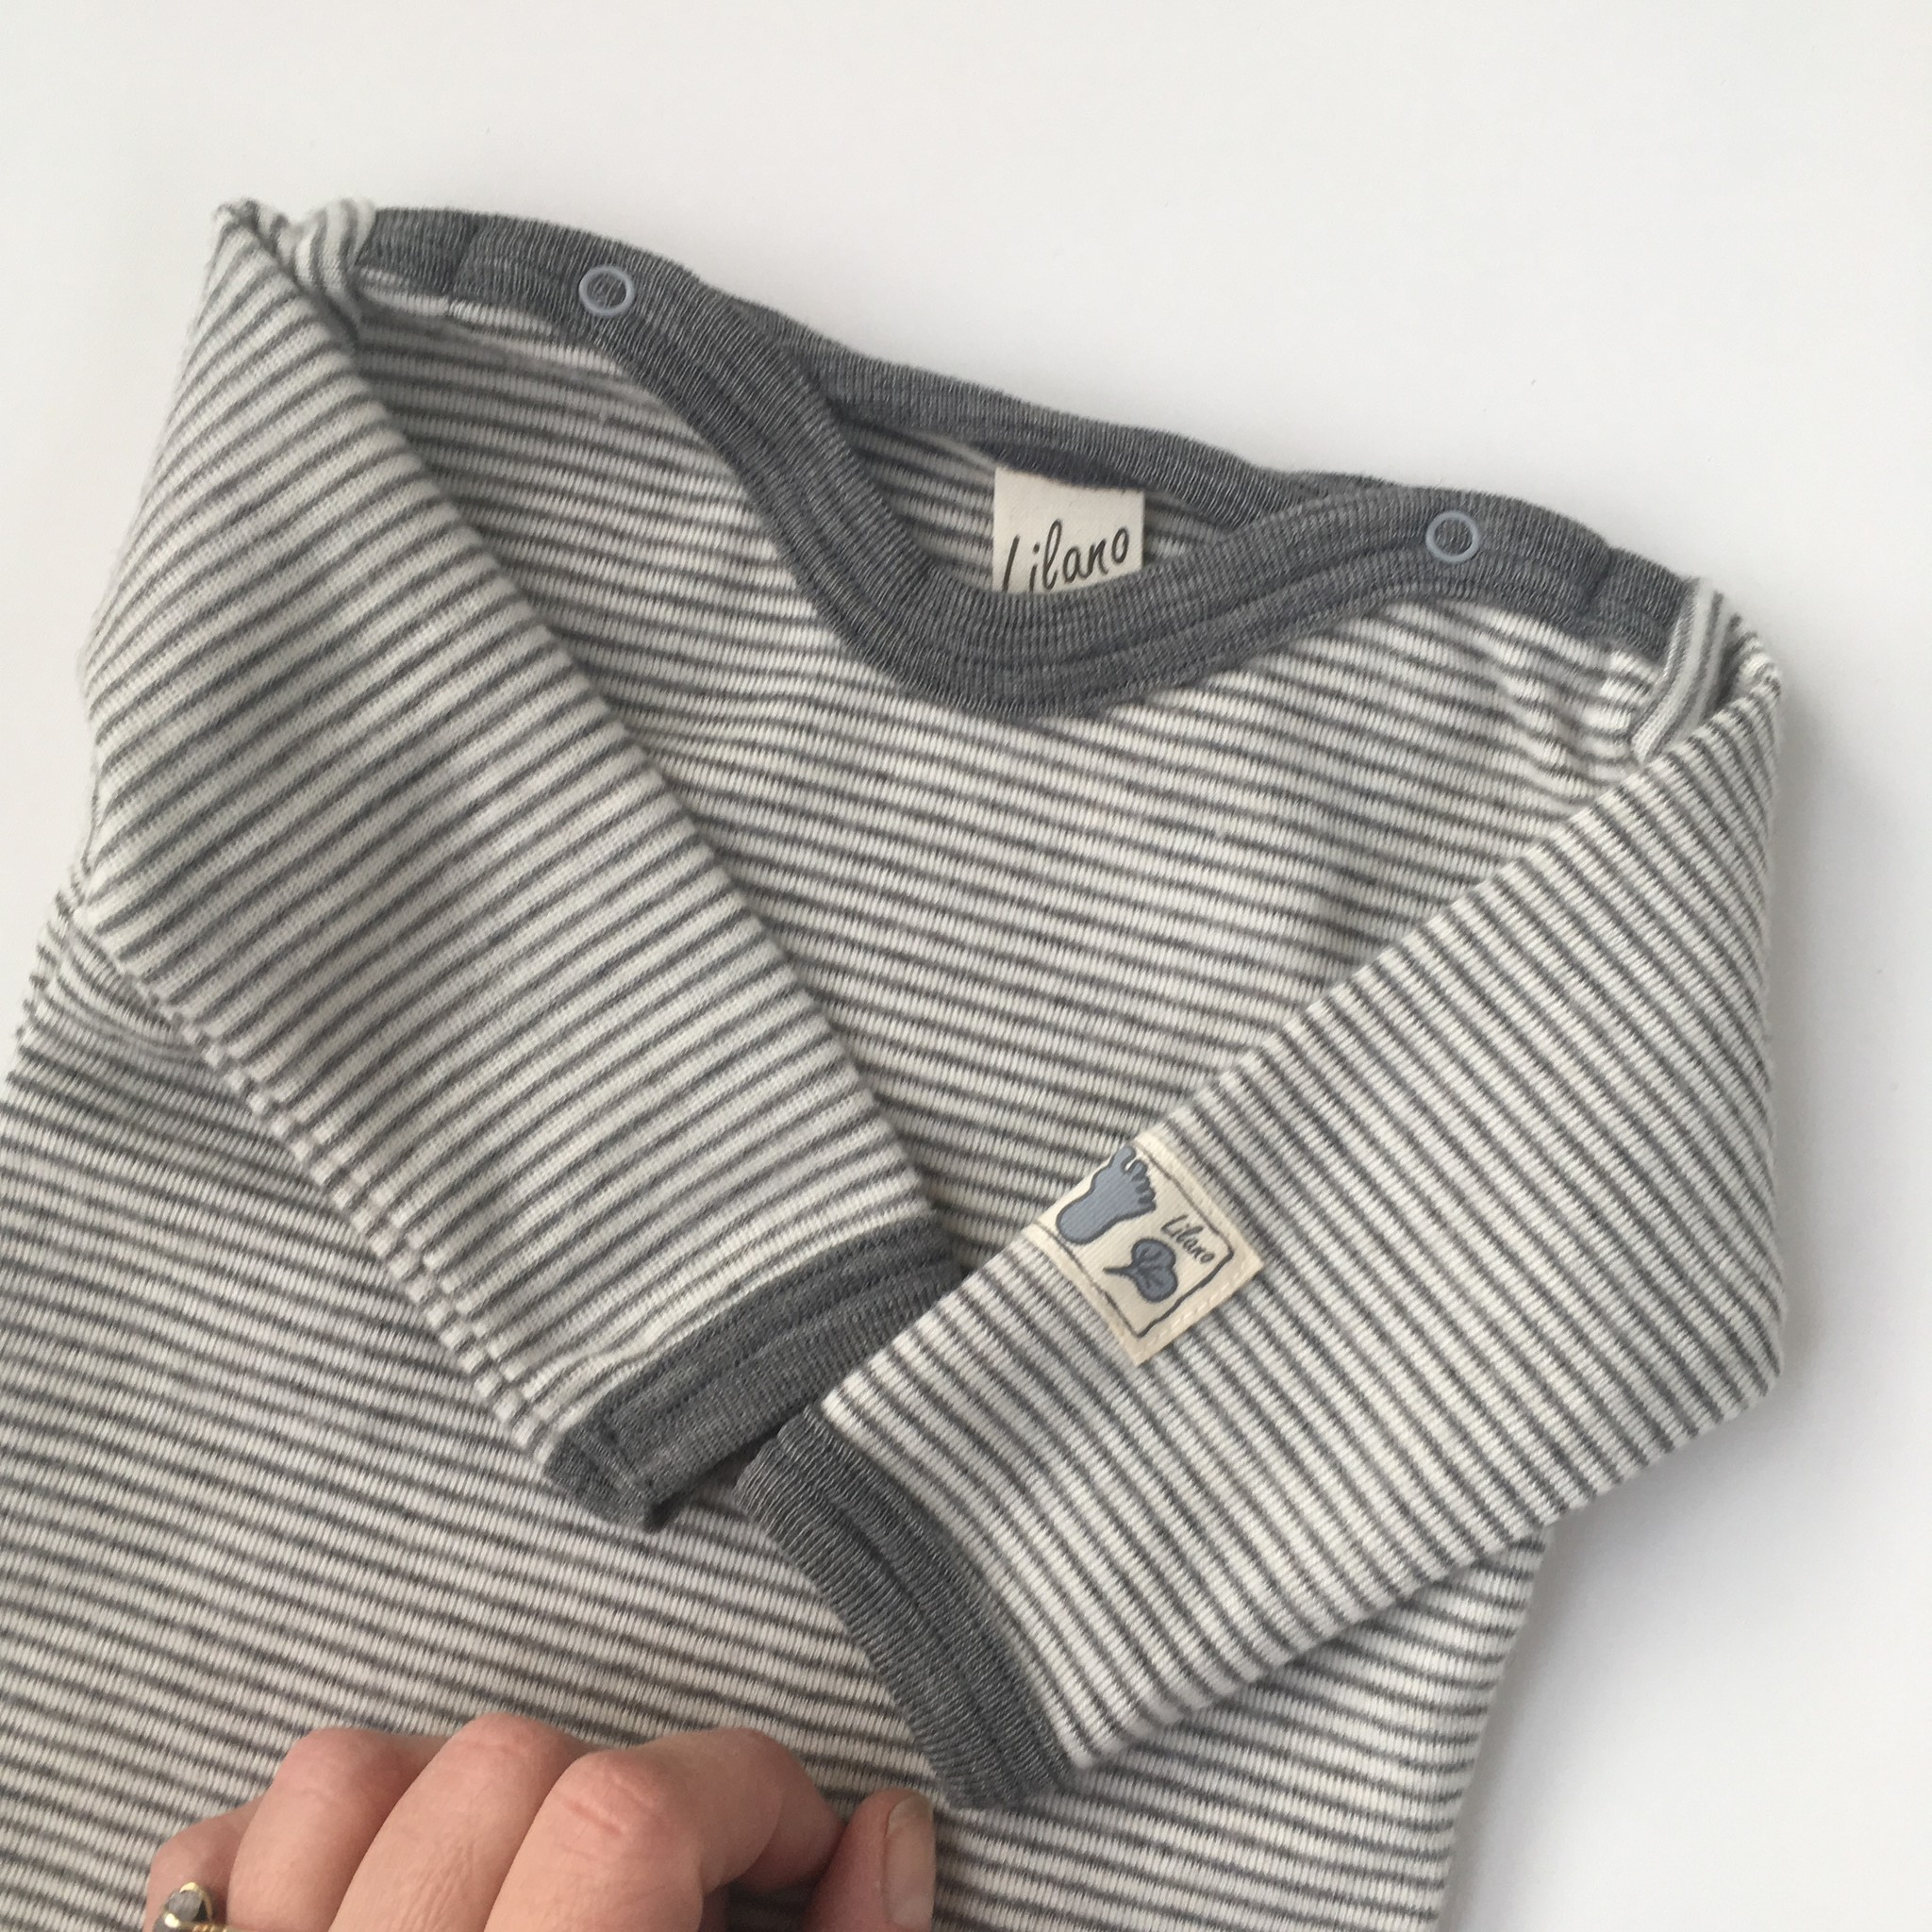 Lilano  wool silk shirt with long sleeves - 70% organic merino wool / 30% silk - white gray striped - 56 to 104